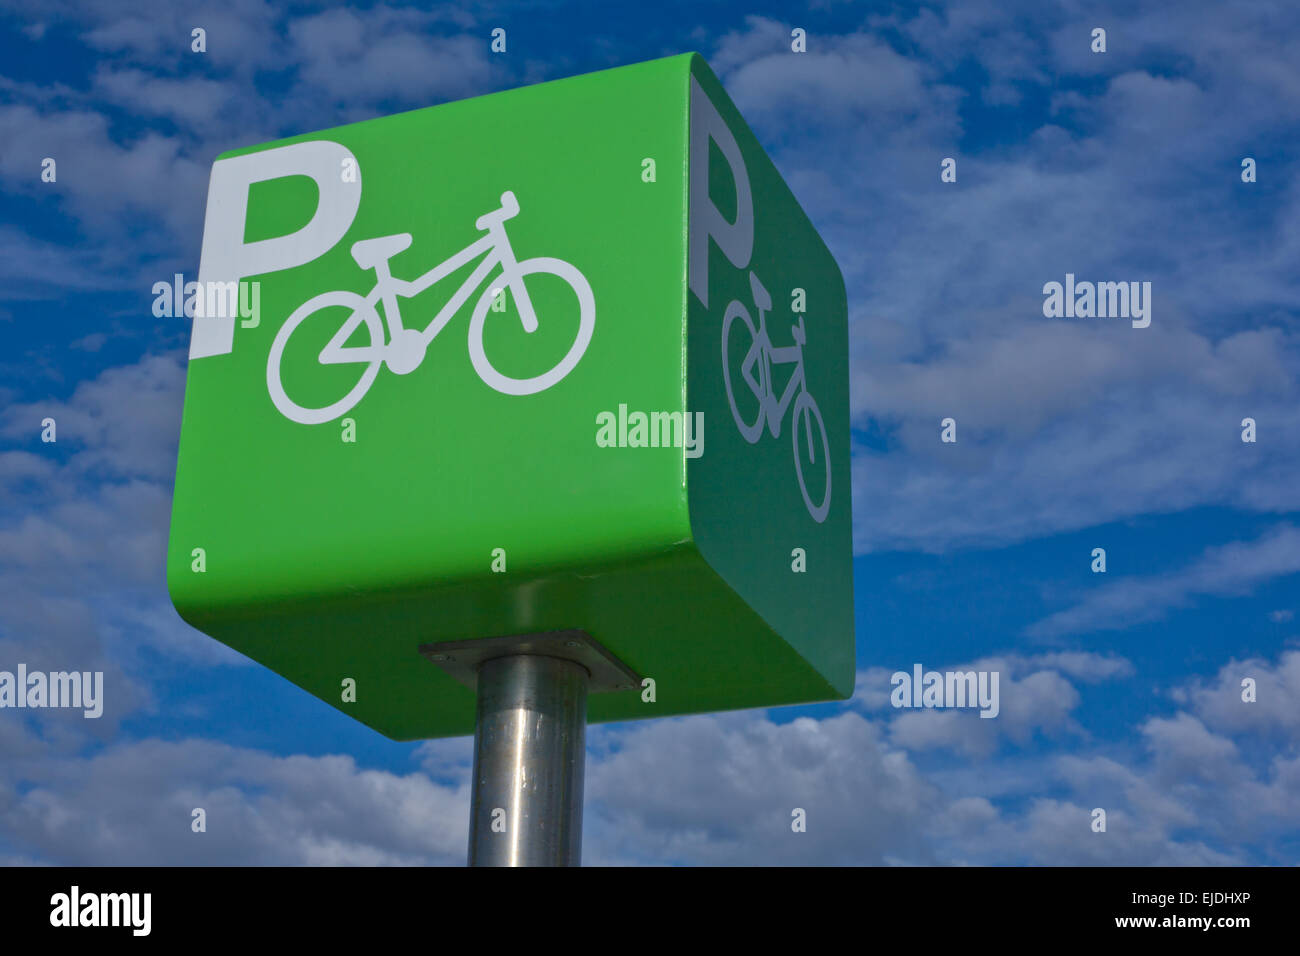 Green parking bicycle pole sign iver blue cloudy sky background Stock Photo